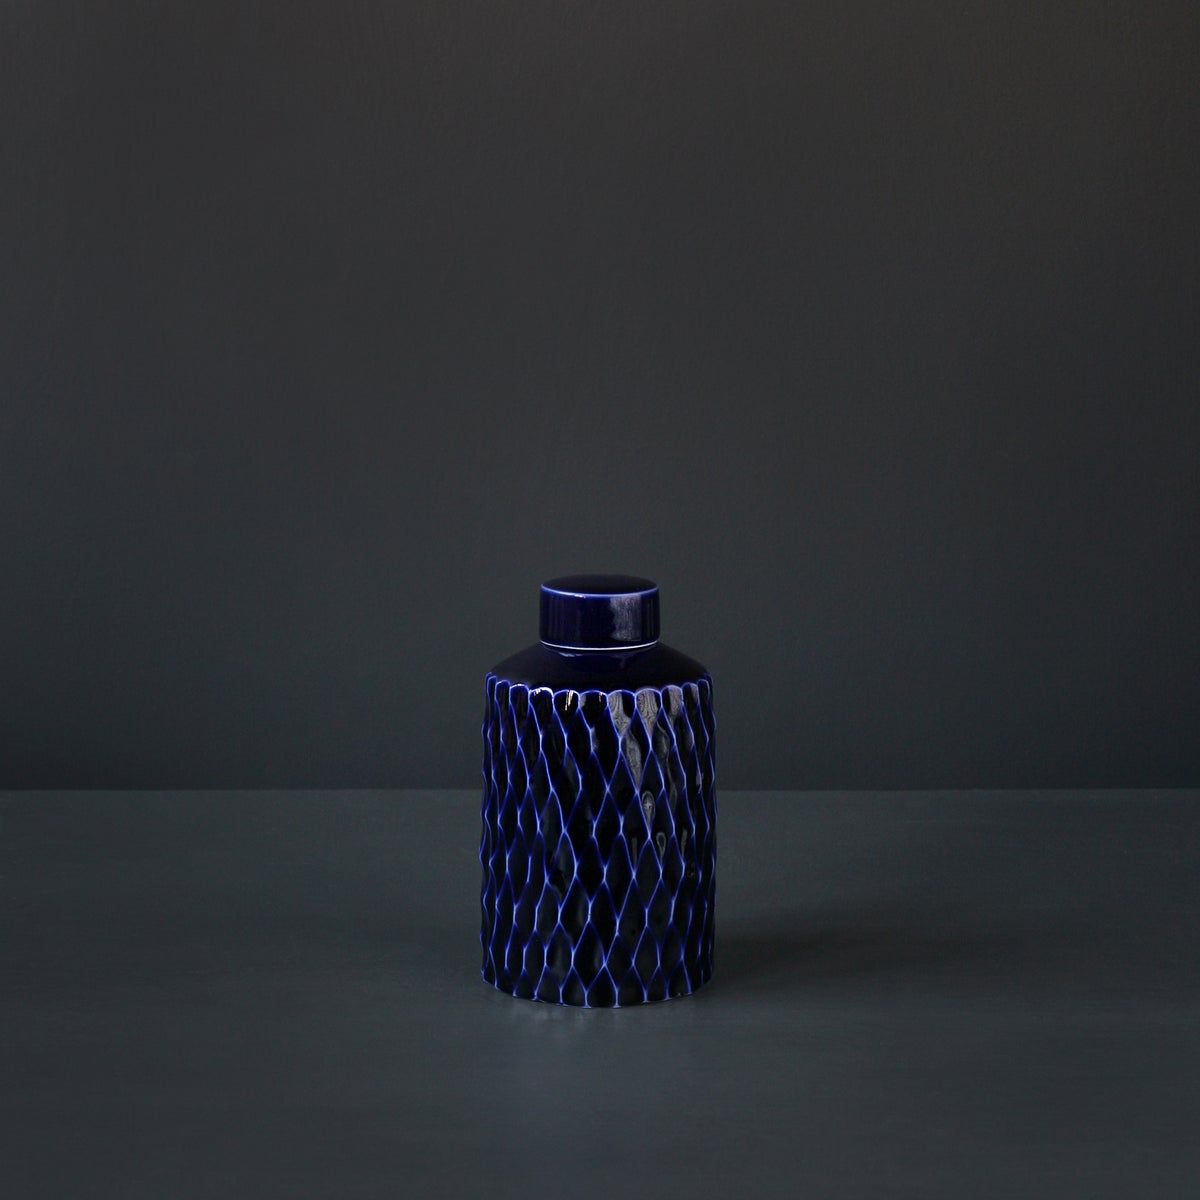 Image of 'Fluted' Ginger Jar by Rhian Malin.